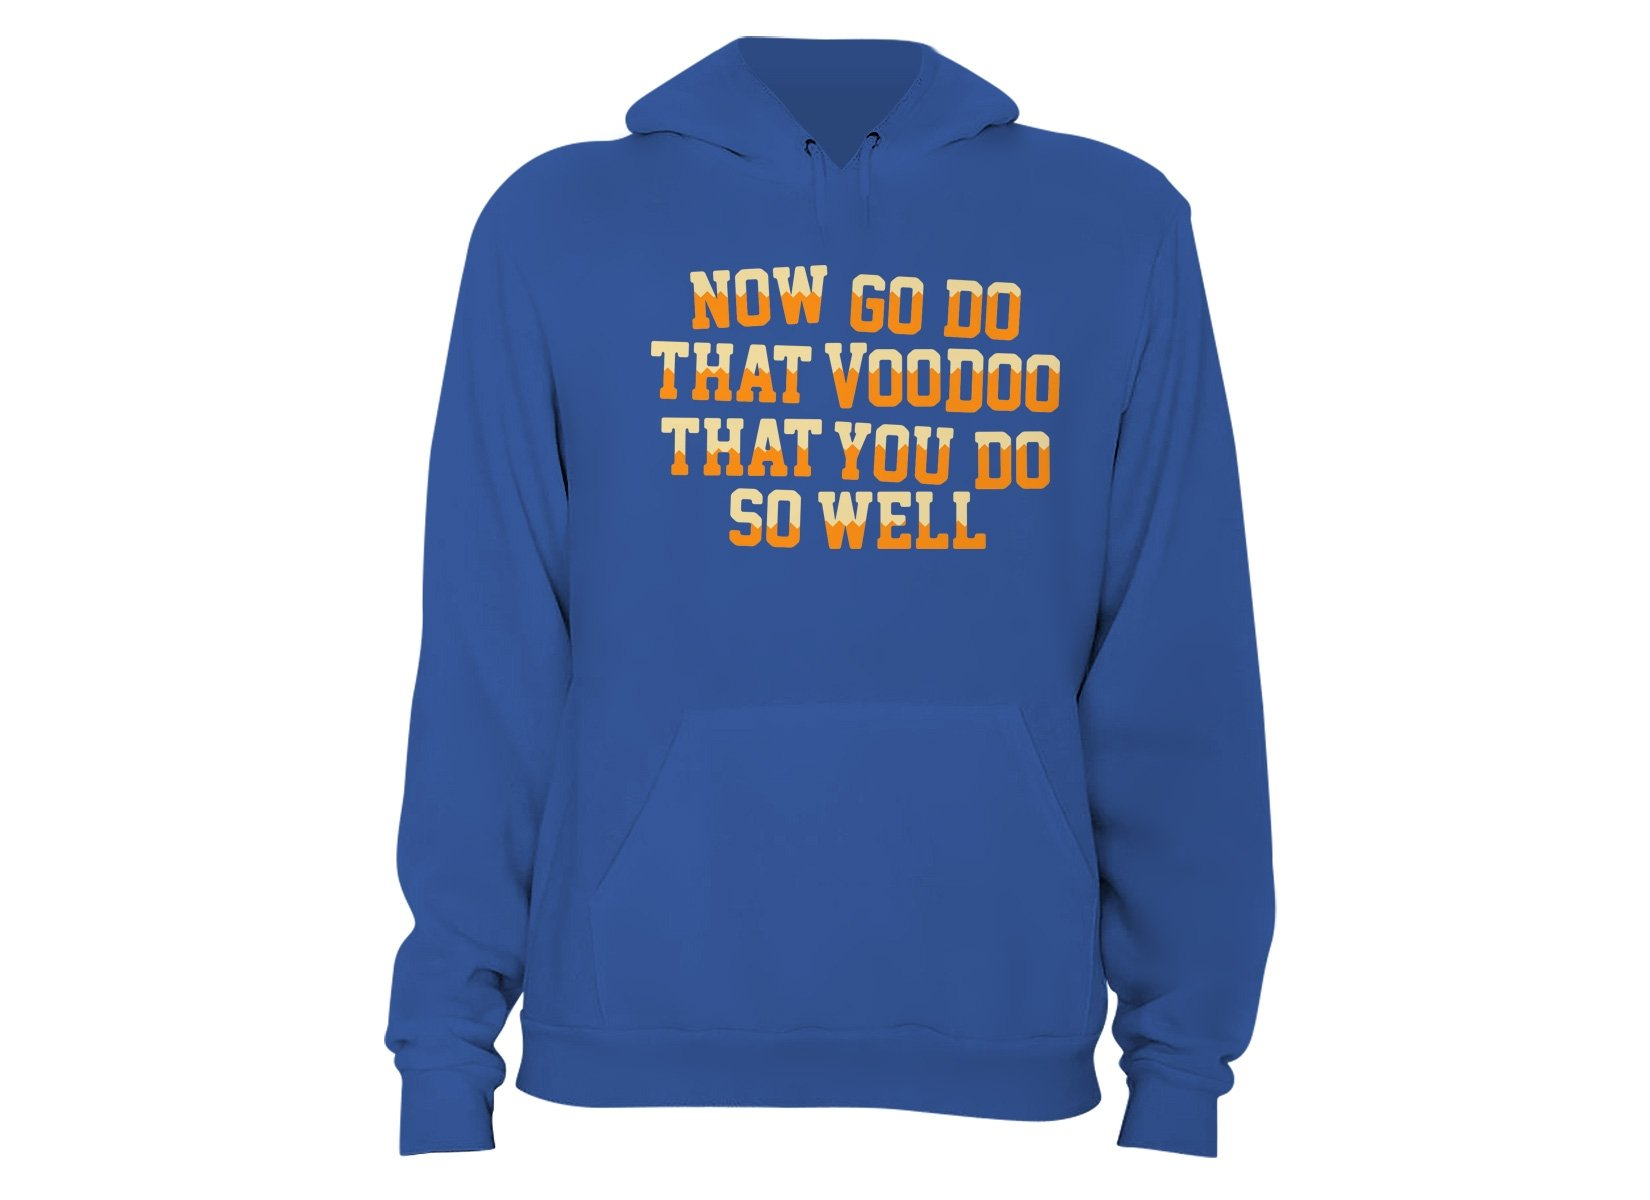 That Voodoo That You Do So Well on Hoodie